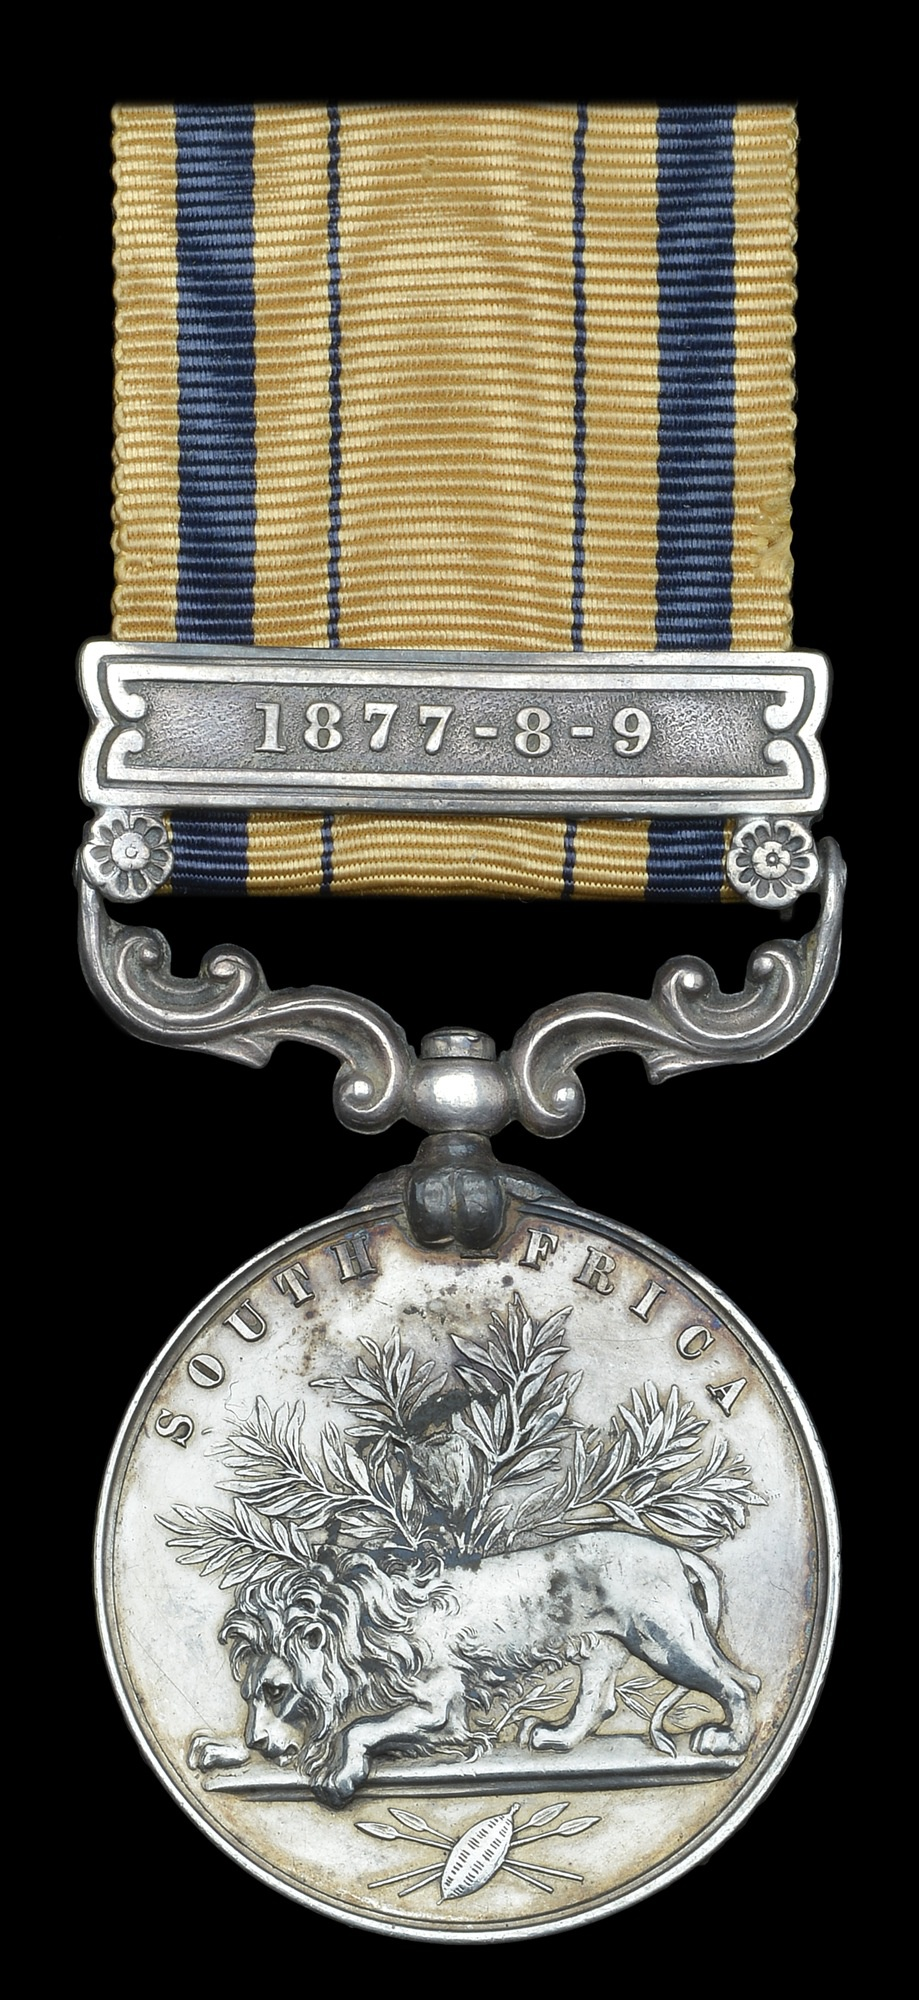 The medal to Private R. Parry, 1-24th Foot, killed in action at Isandhlwana, which recently sold for £8,000 (DNW)